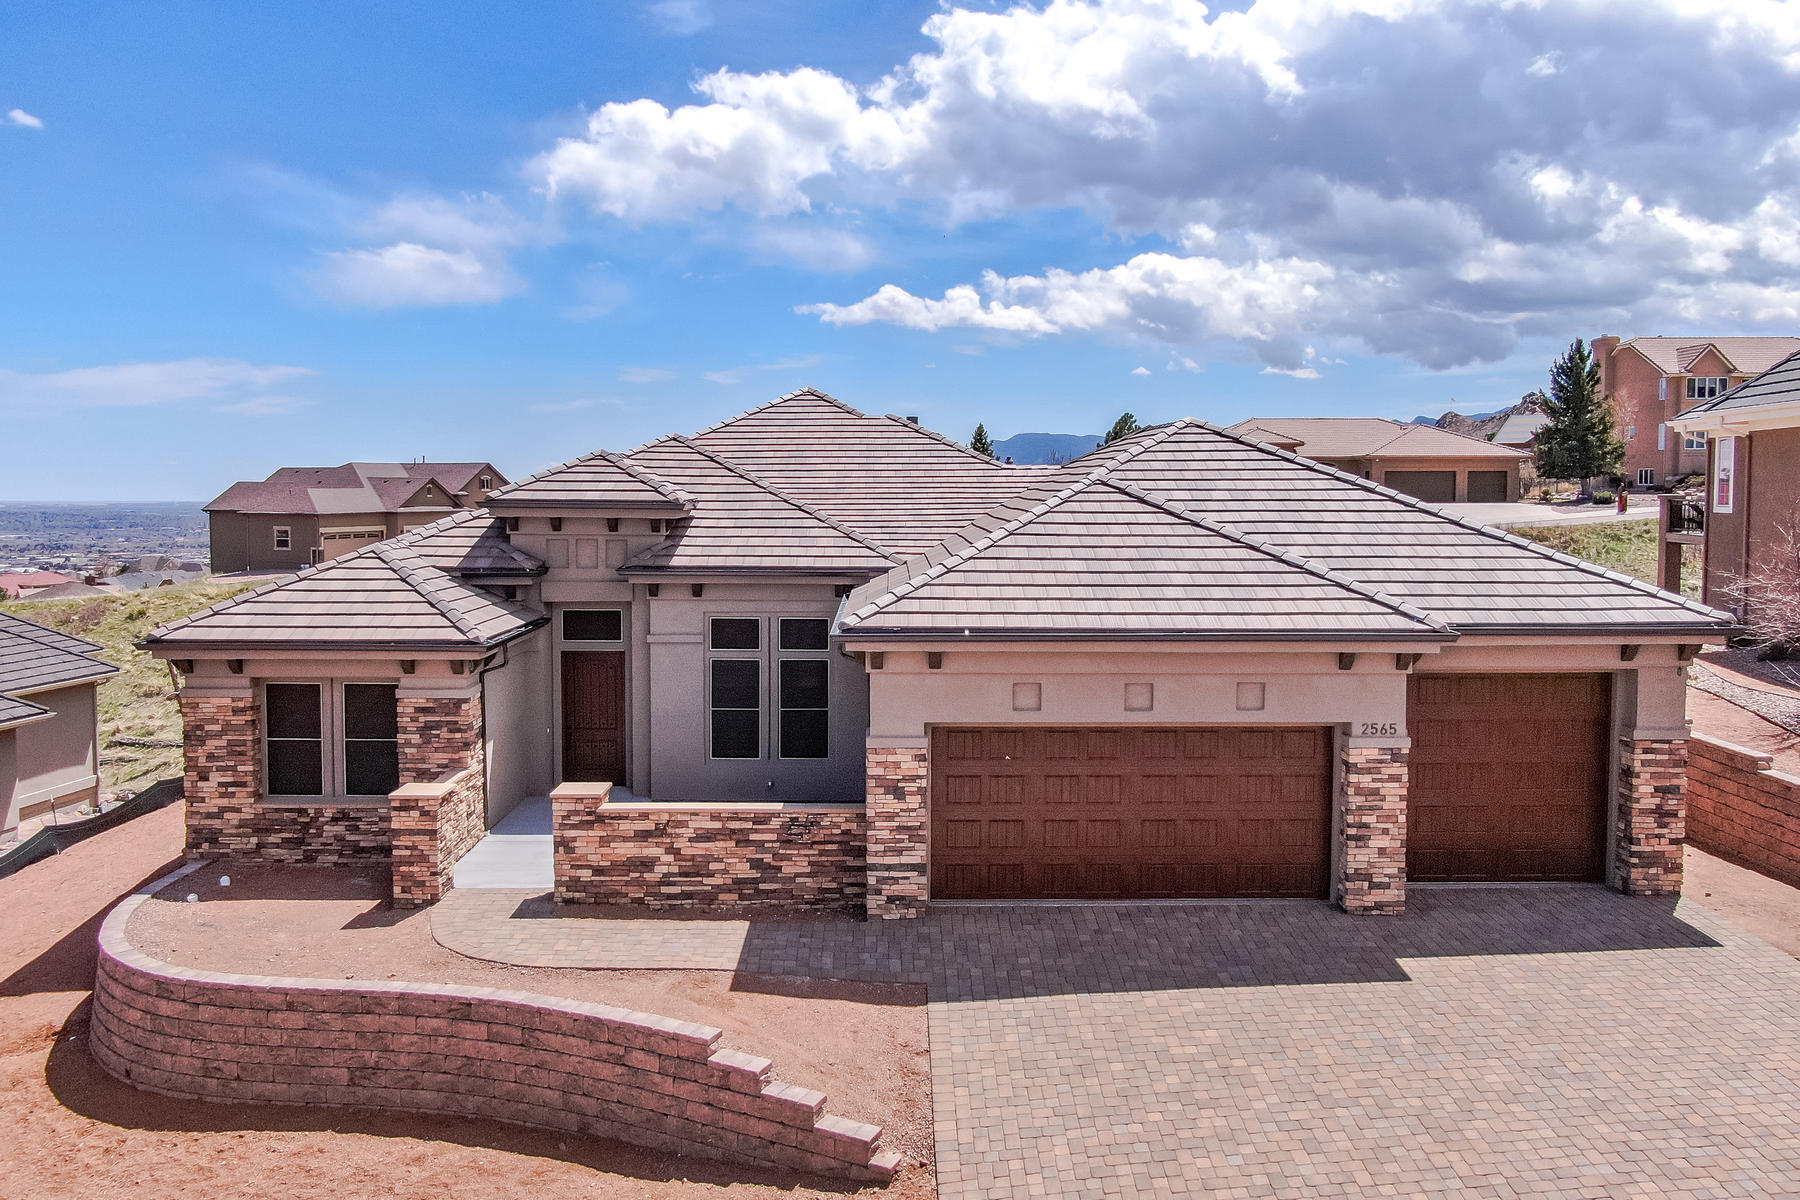 Single Family Homes for Sale at Brand New Energy-Efficient Construction. 2565 Brogans Bluff Drive Colorado Springs, Colorado 80919 United States